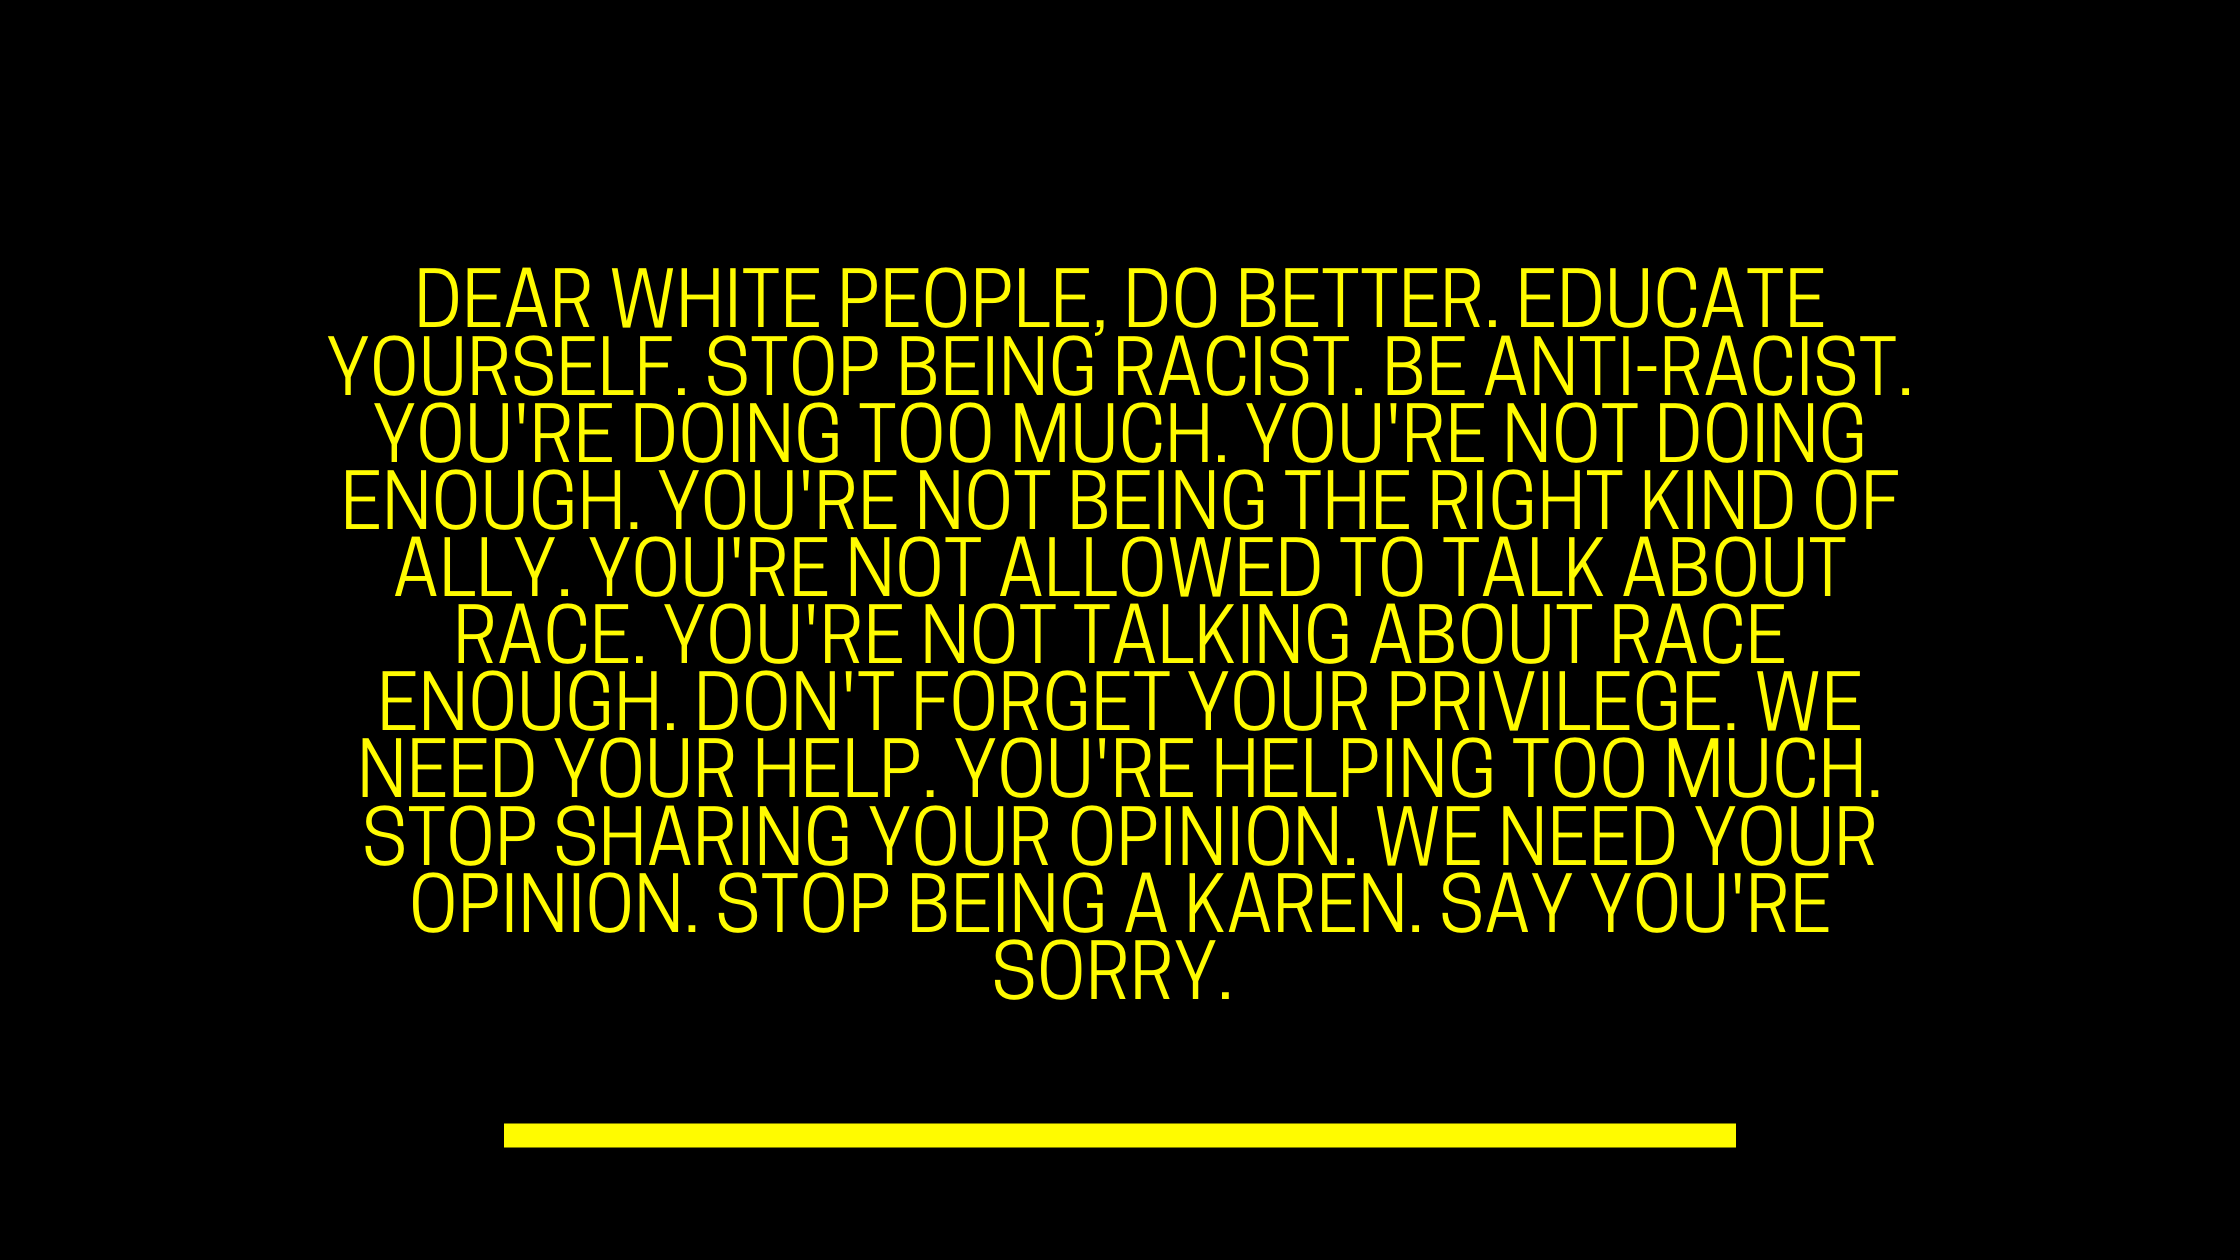 A number of paraphrased statements taken from 'Dear White People' style articles displayed on top of a black background.